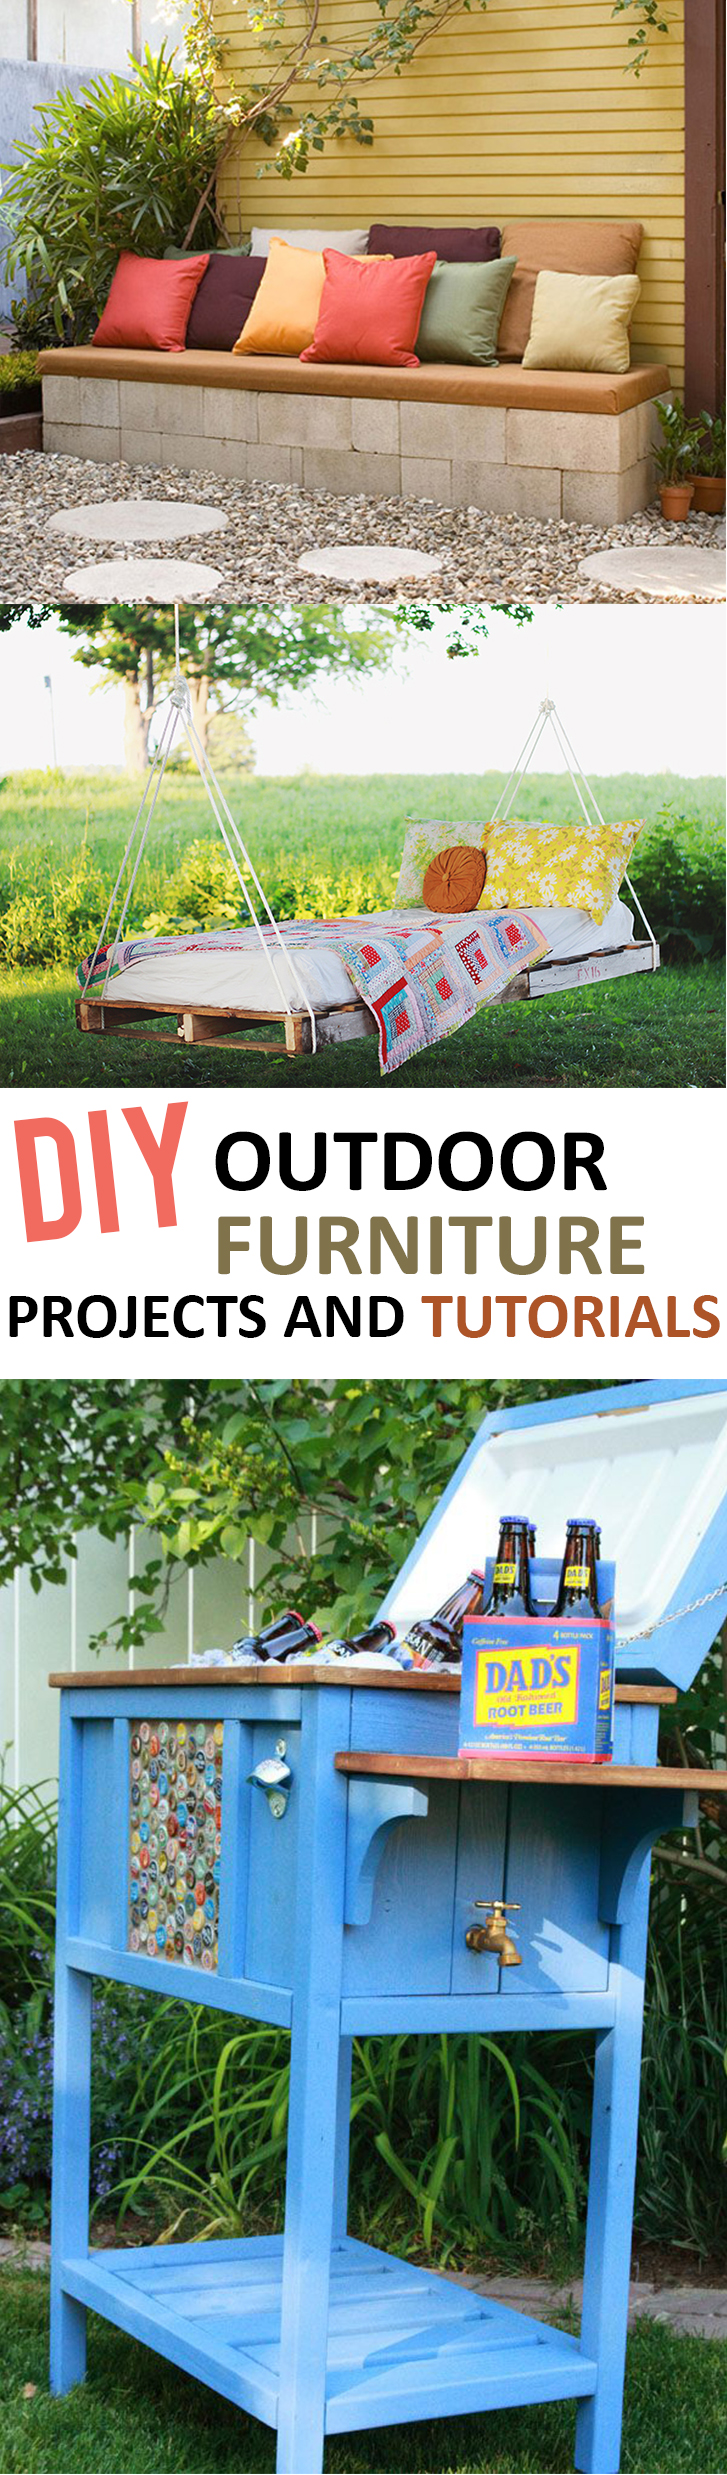 Diy Furniture Projects Diy Outdoor Furniture Projects And Tutorials